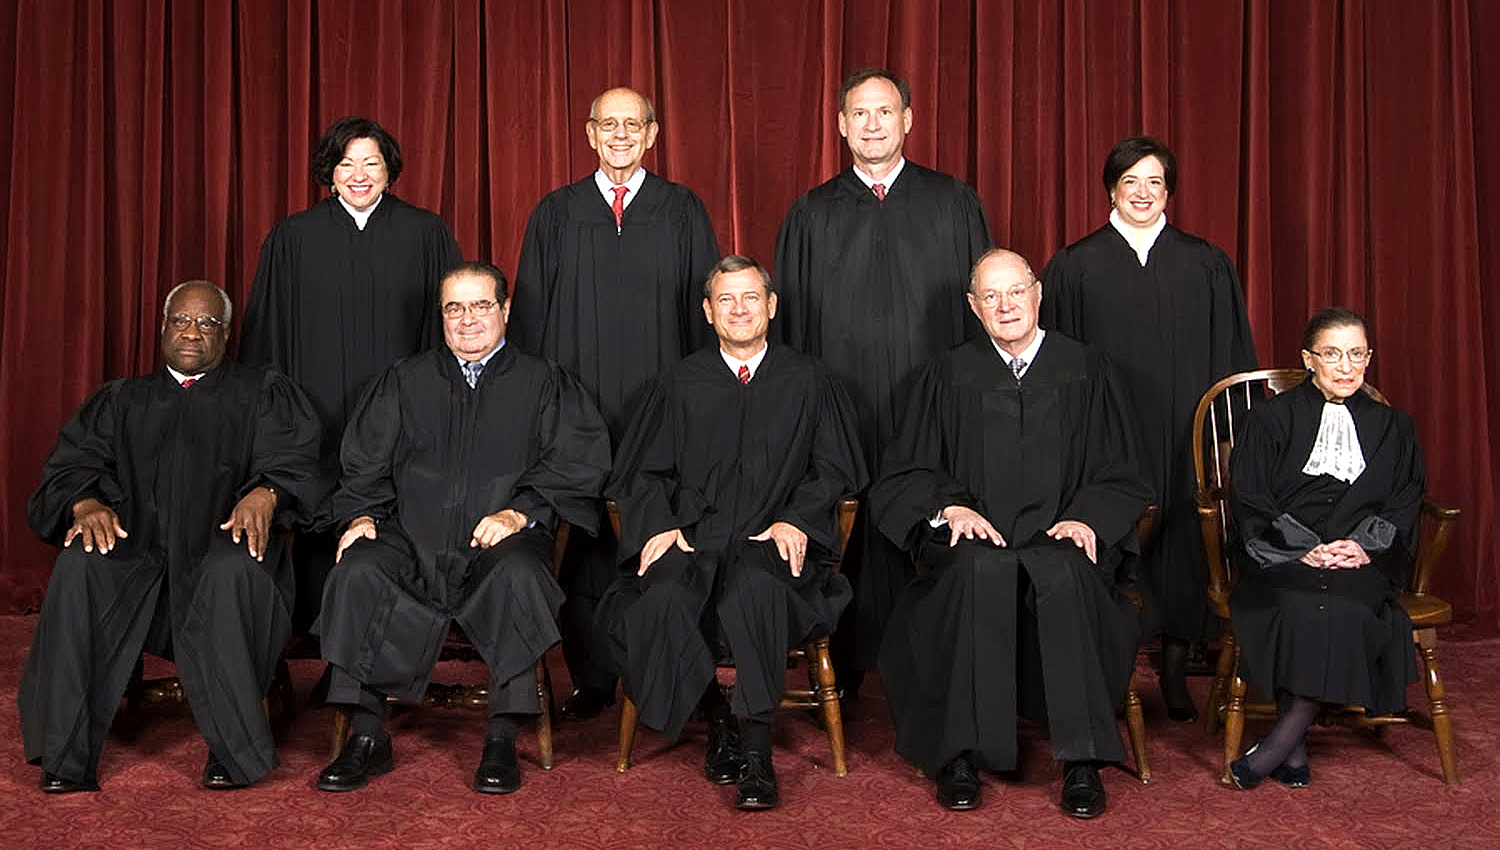 By Steve Petteway, Collection of the Supreme Court of the United States (Roberts Court (2010-) - The Oyez Project) [Public domain], via Wikimedia Commons.